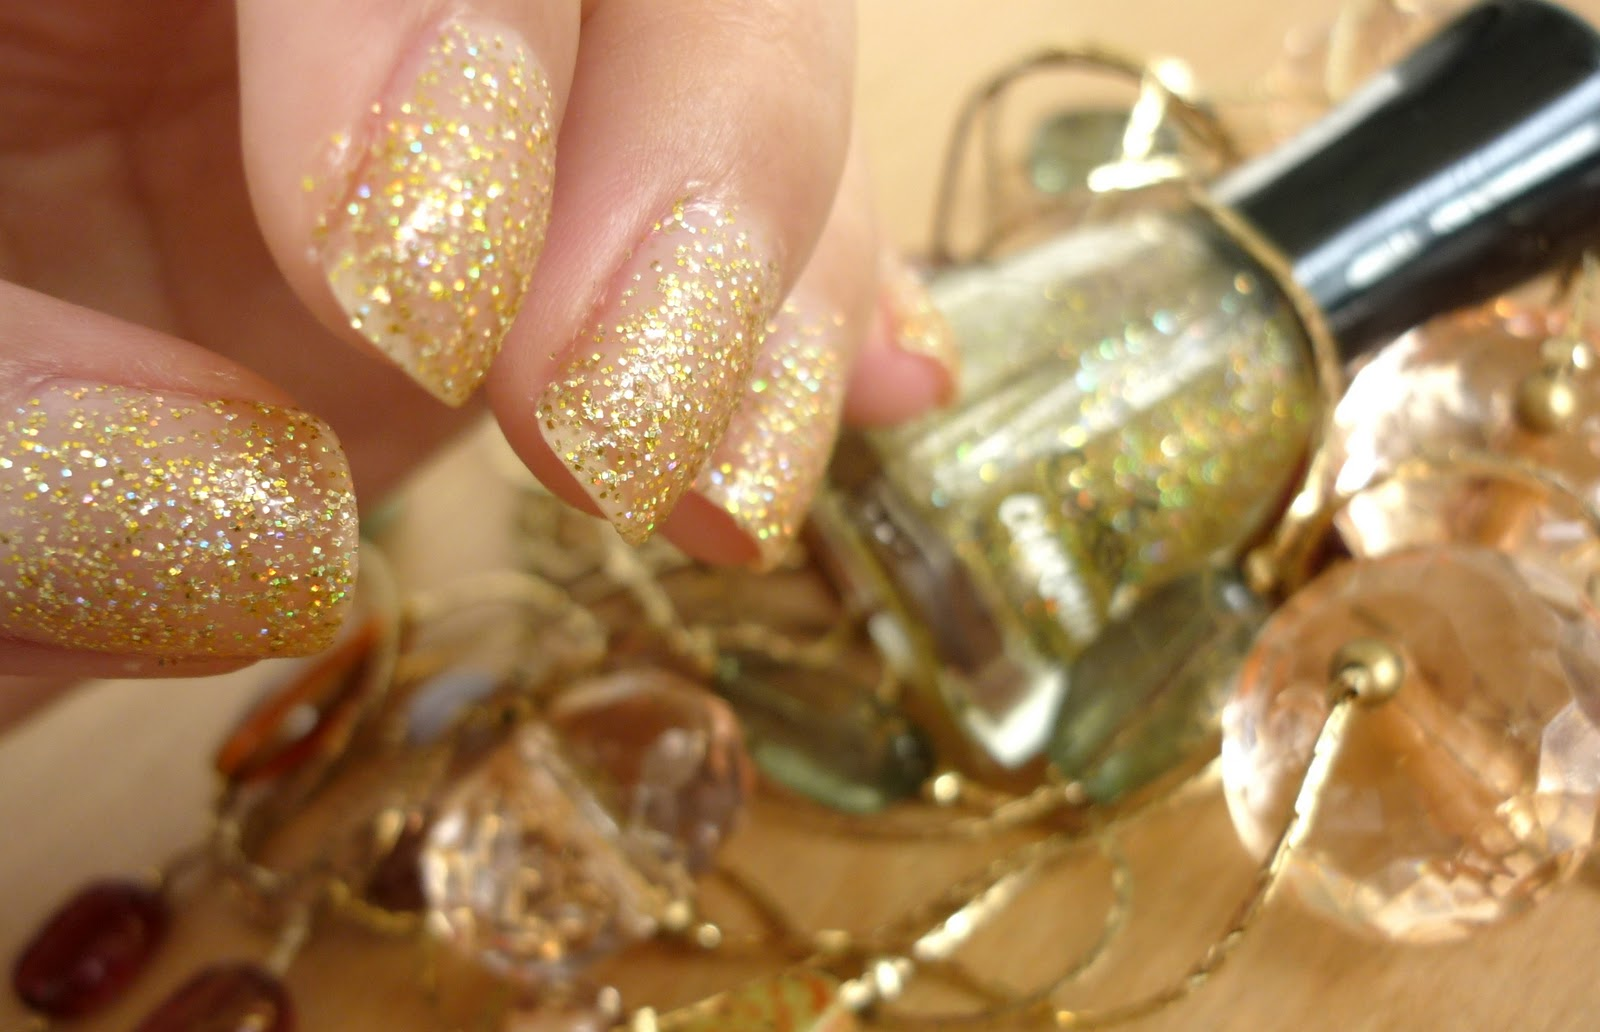 Luxury Opi Glitter Nail Polish India Pattern - Nail Art Design Ideas ...